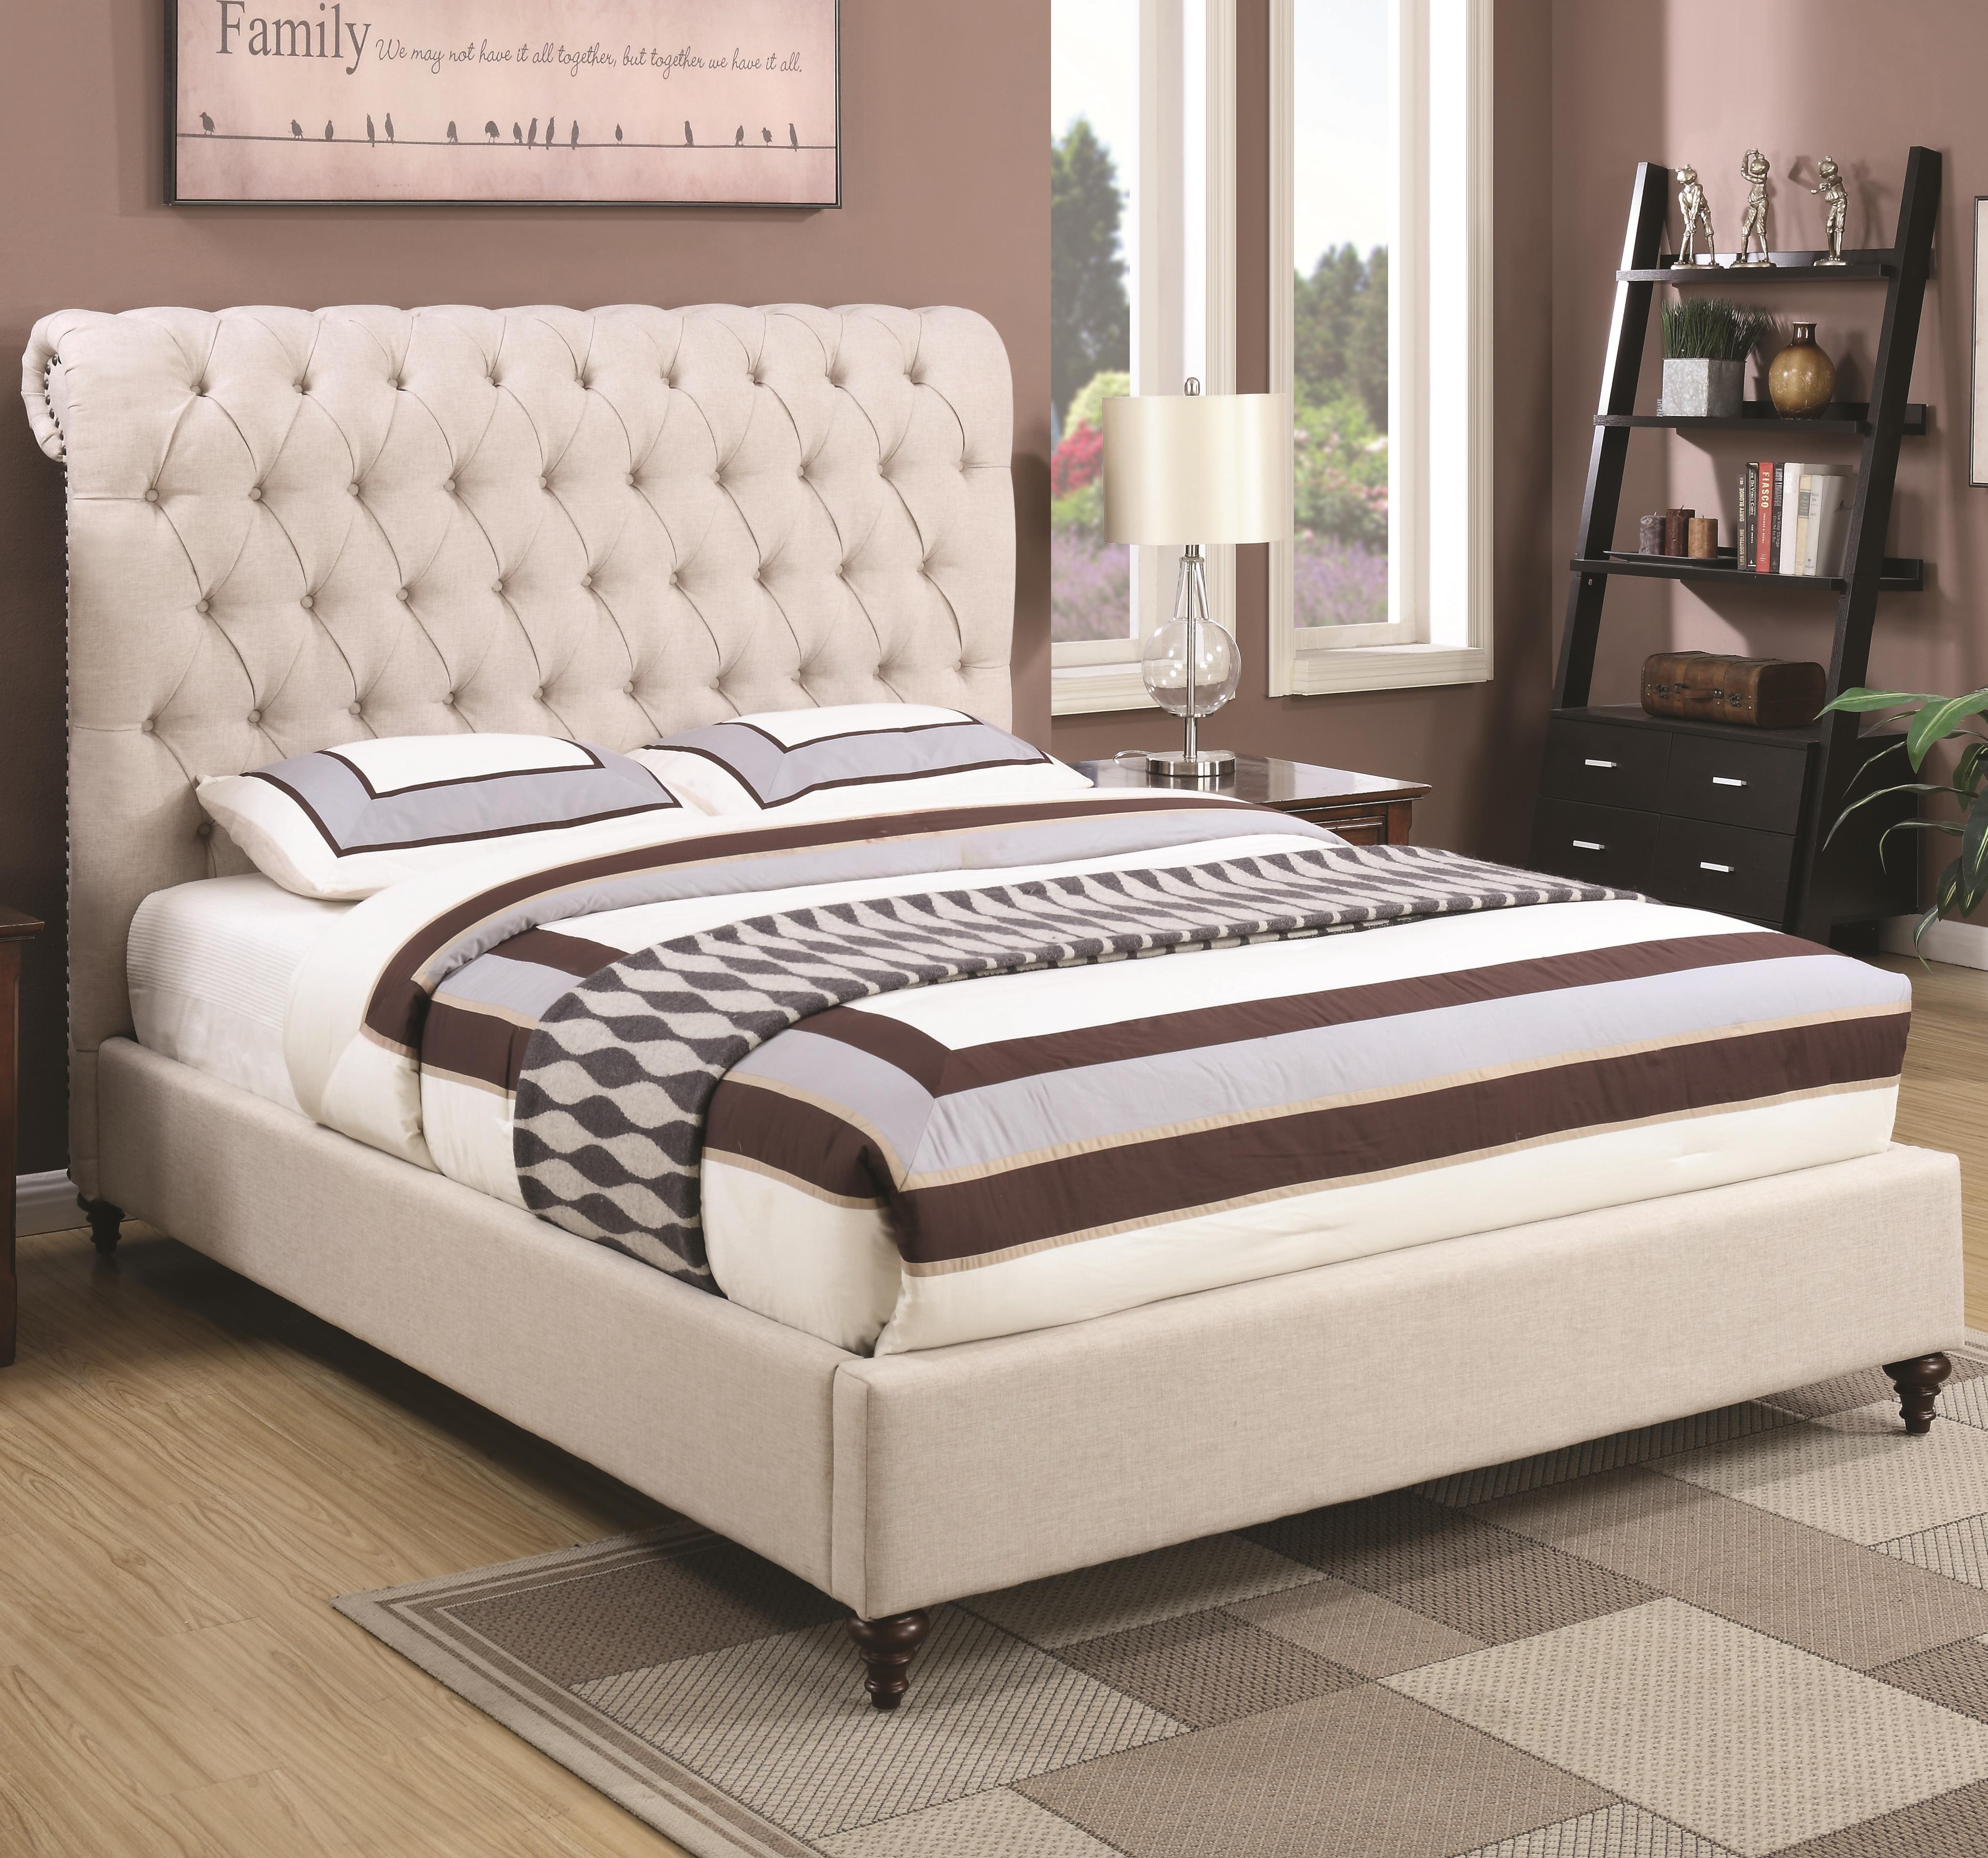 Coaster devon 300525q queen upholstered bed in beige fabric dunk bright furniture for Bedroom sets with upholstered headboards